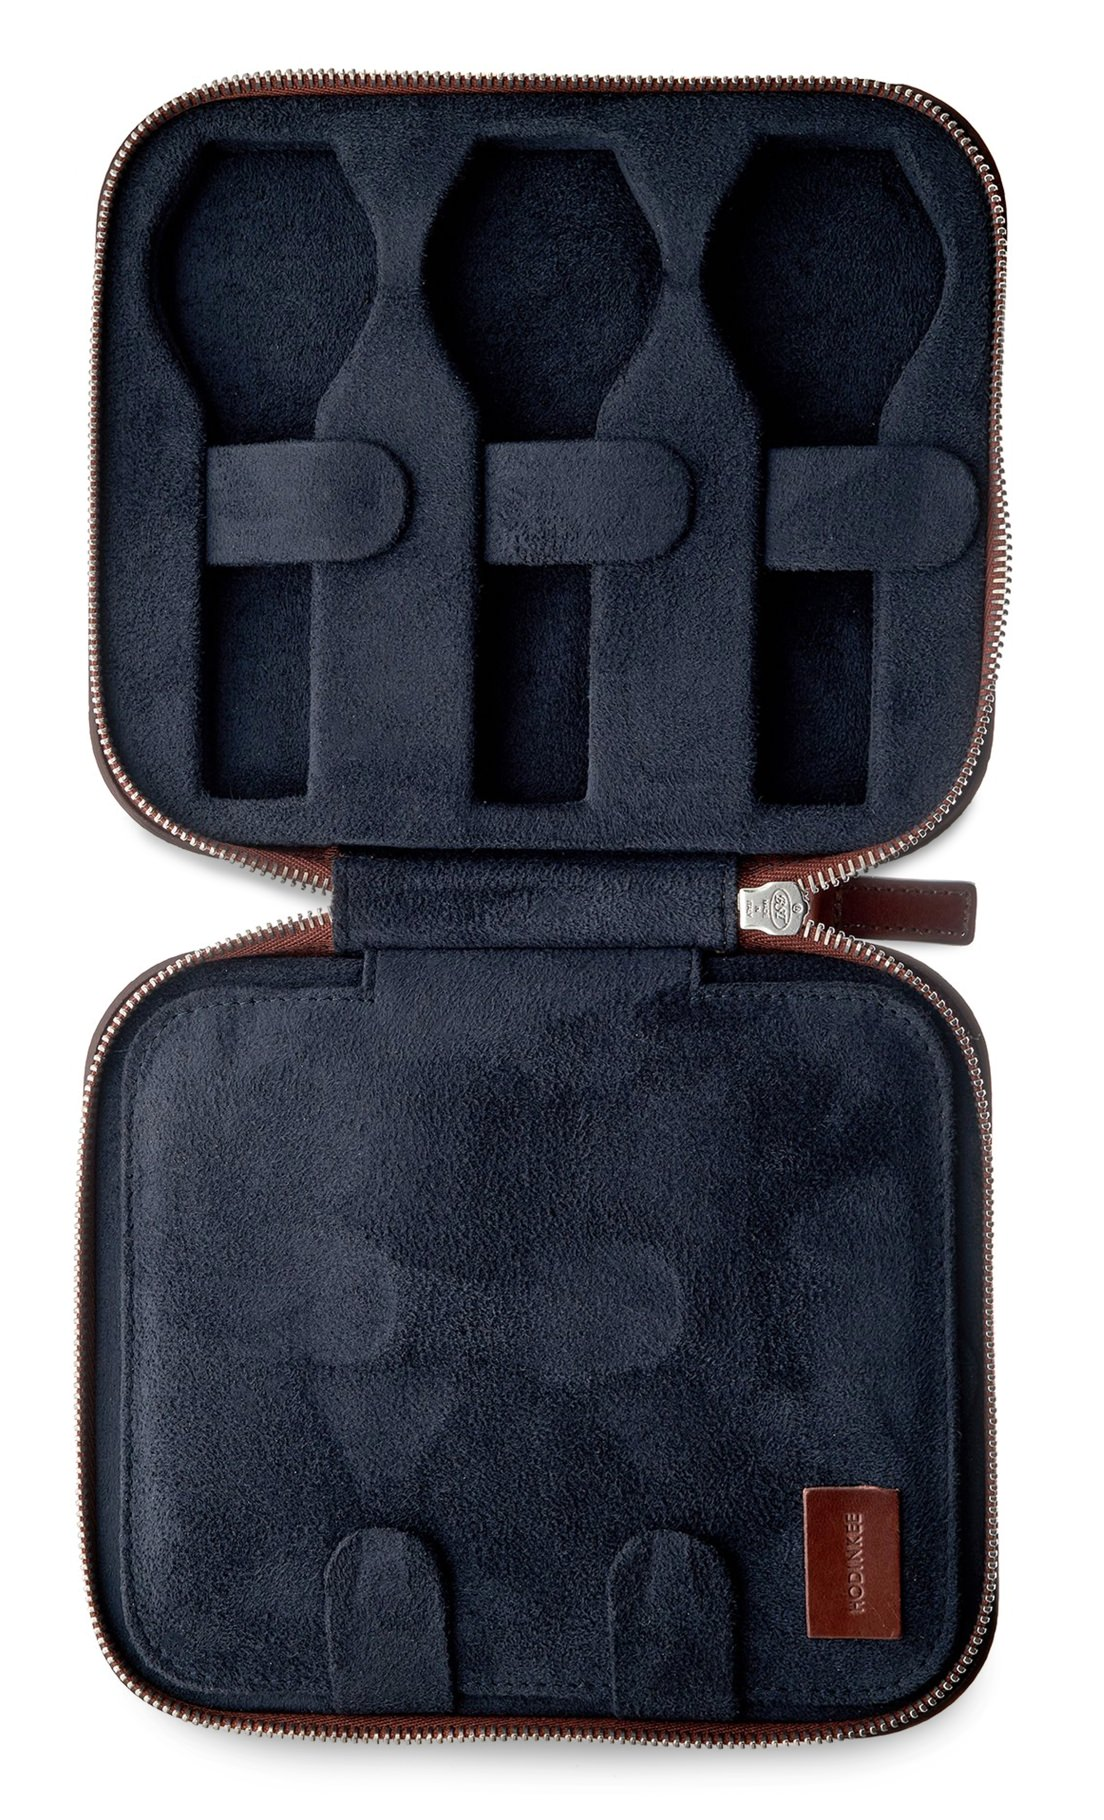 Hodinkee Leather Travel Case